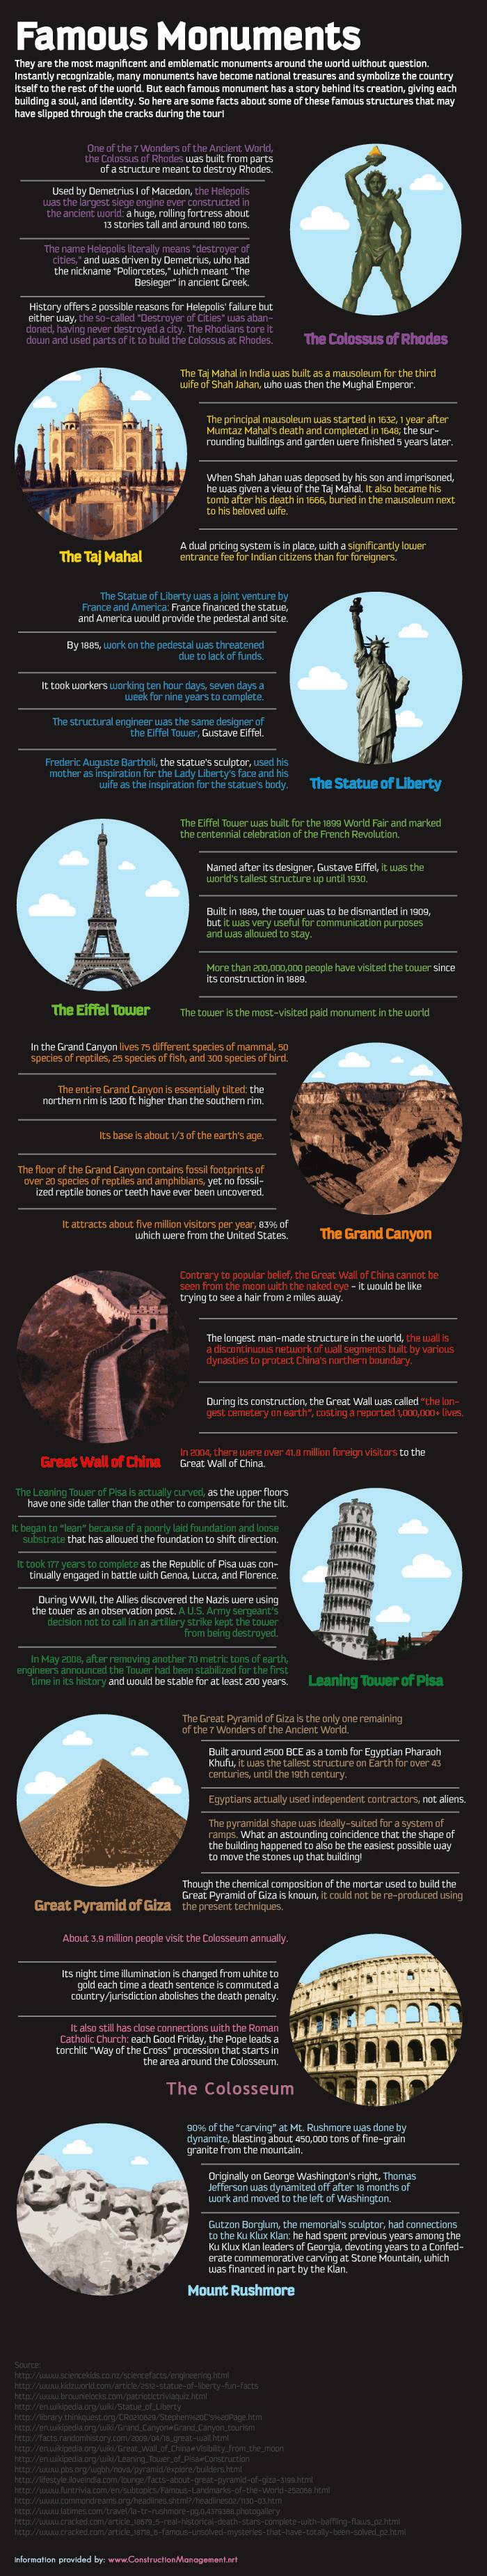 Famous Monuments From Around the World [Infographic]